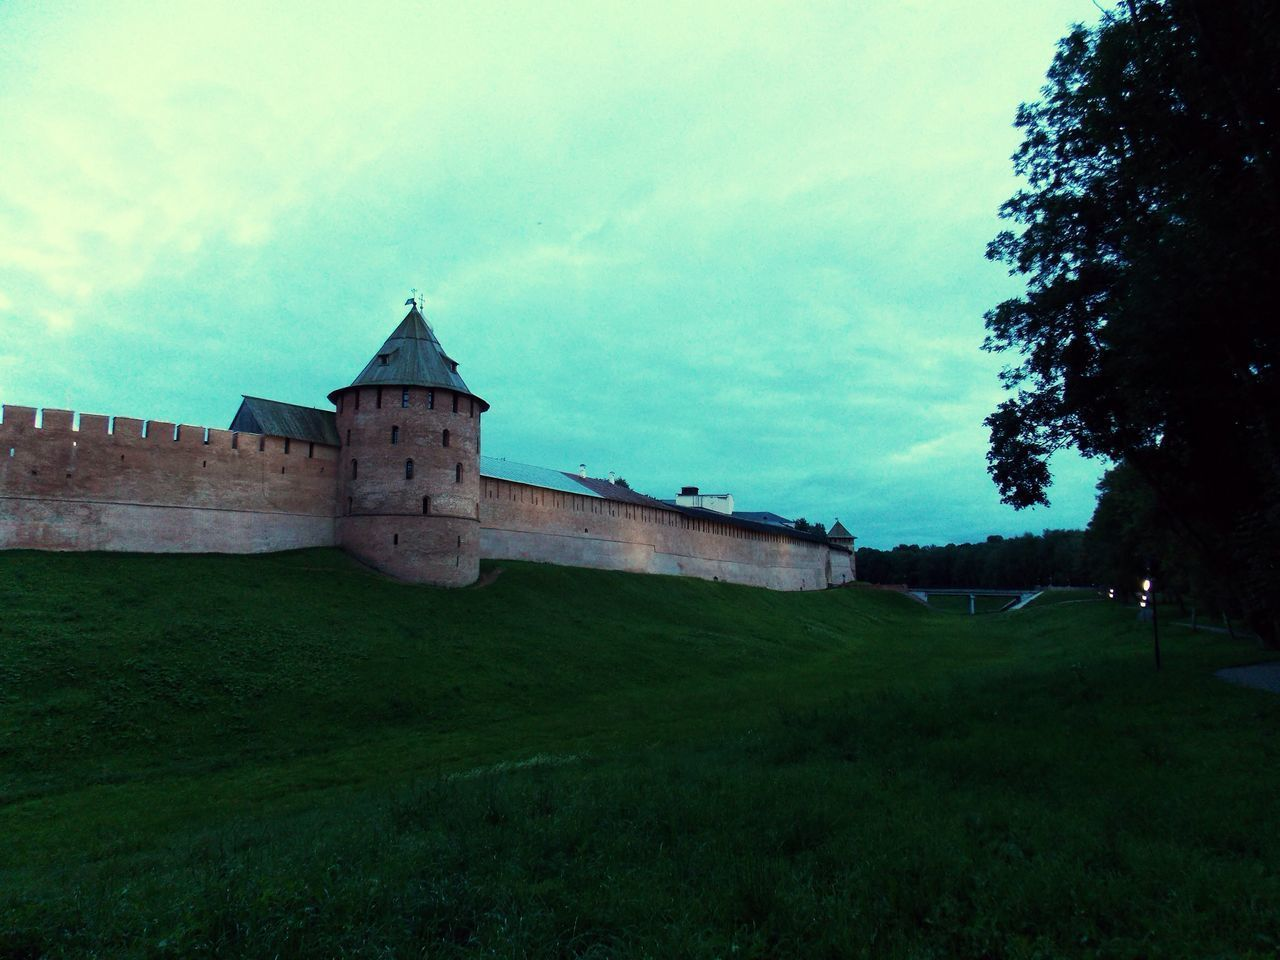 Architecture Built Structure History Russian Town Medieval Medieval Architecture Medieval Castle Castle Castle Walls Historical Building Historic History Architecture Novgorod Russia Russian History